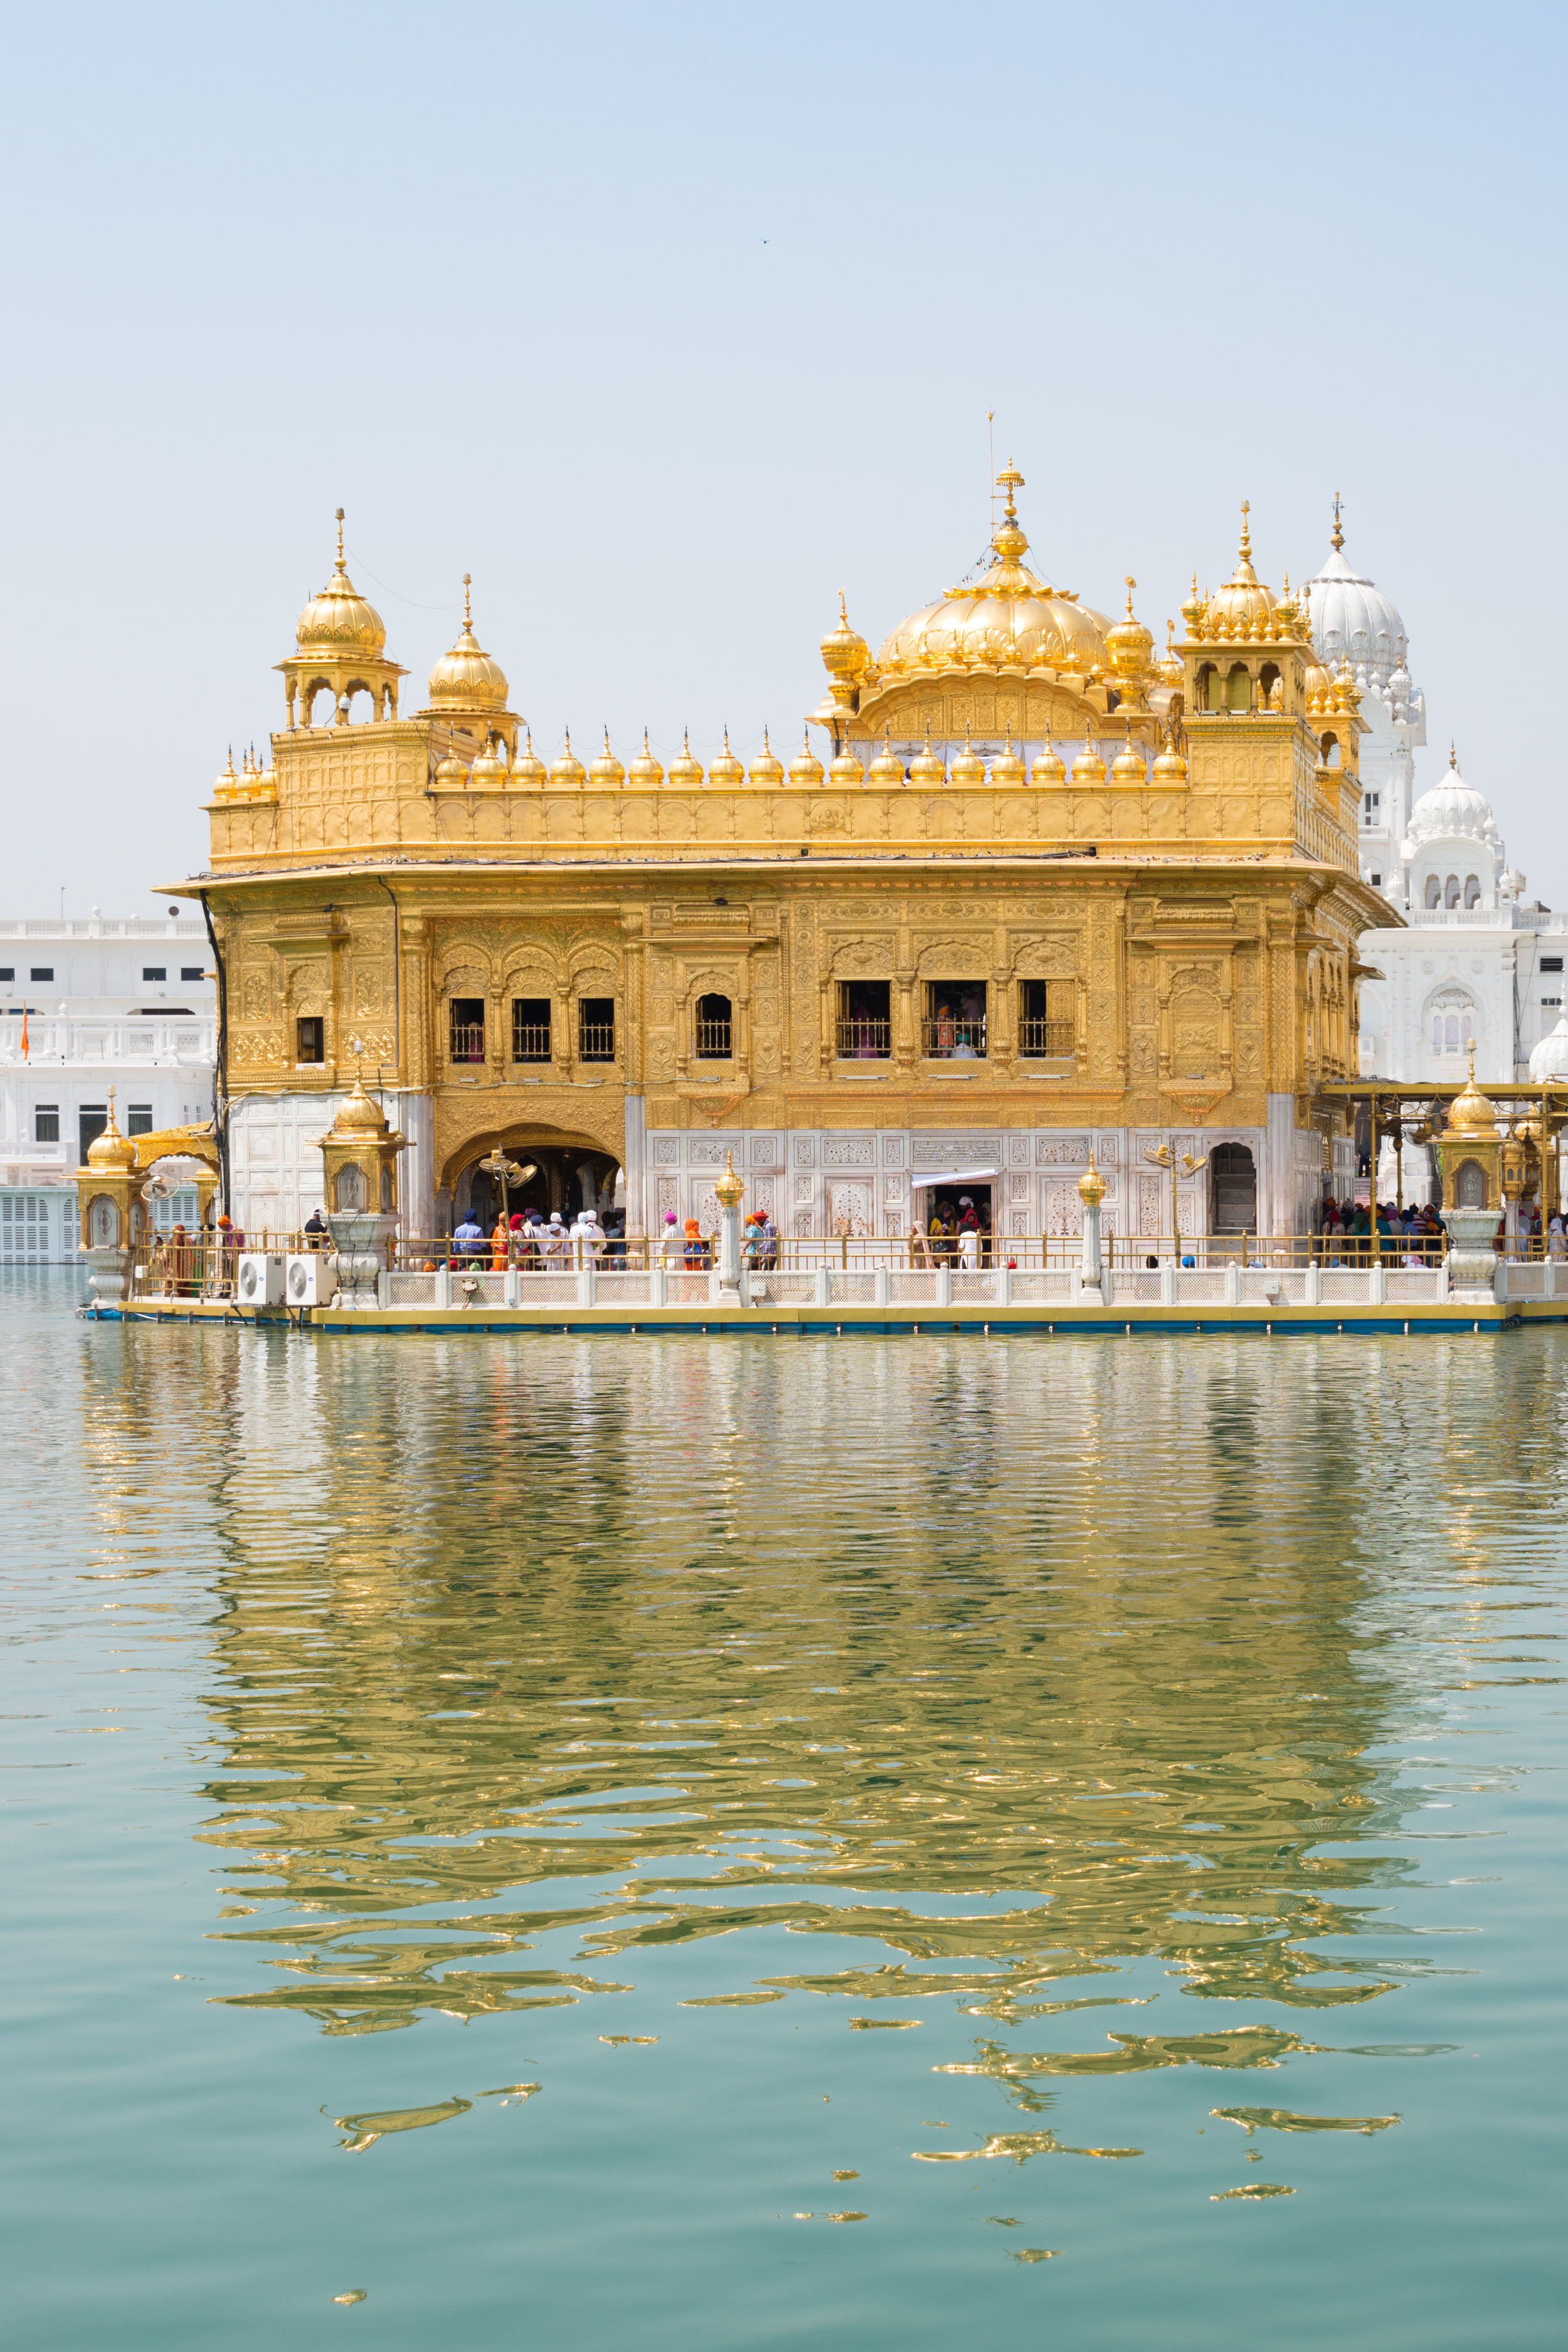 Turquoise and Gold, The Golden Temple in Amritsar, India